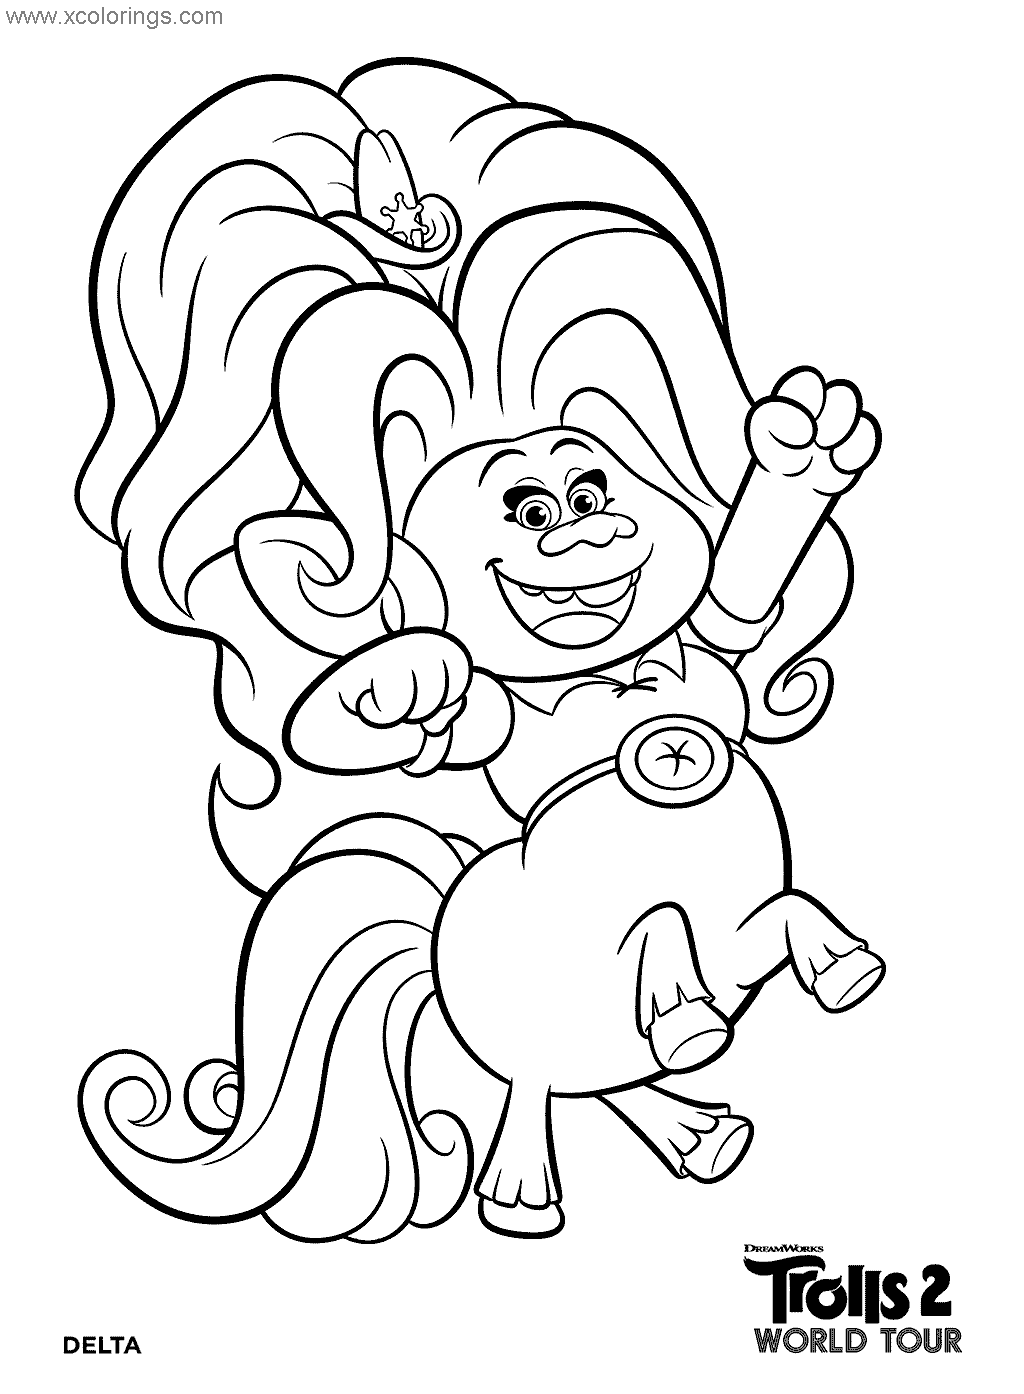 Delta From Trolls World Tour Coloring Pages Xcolorings Com